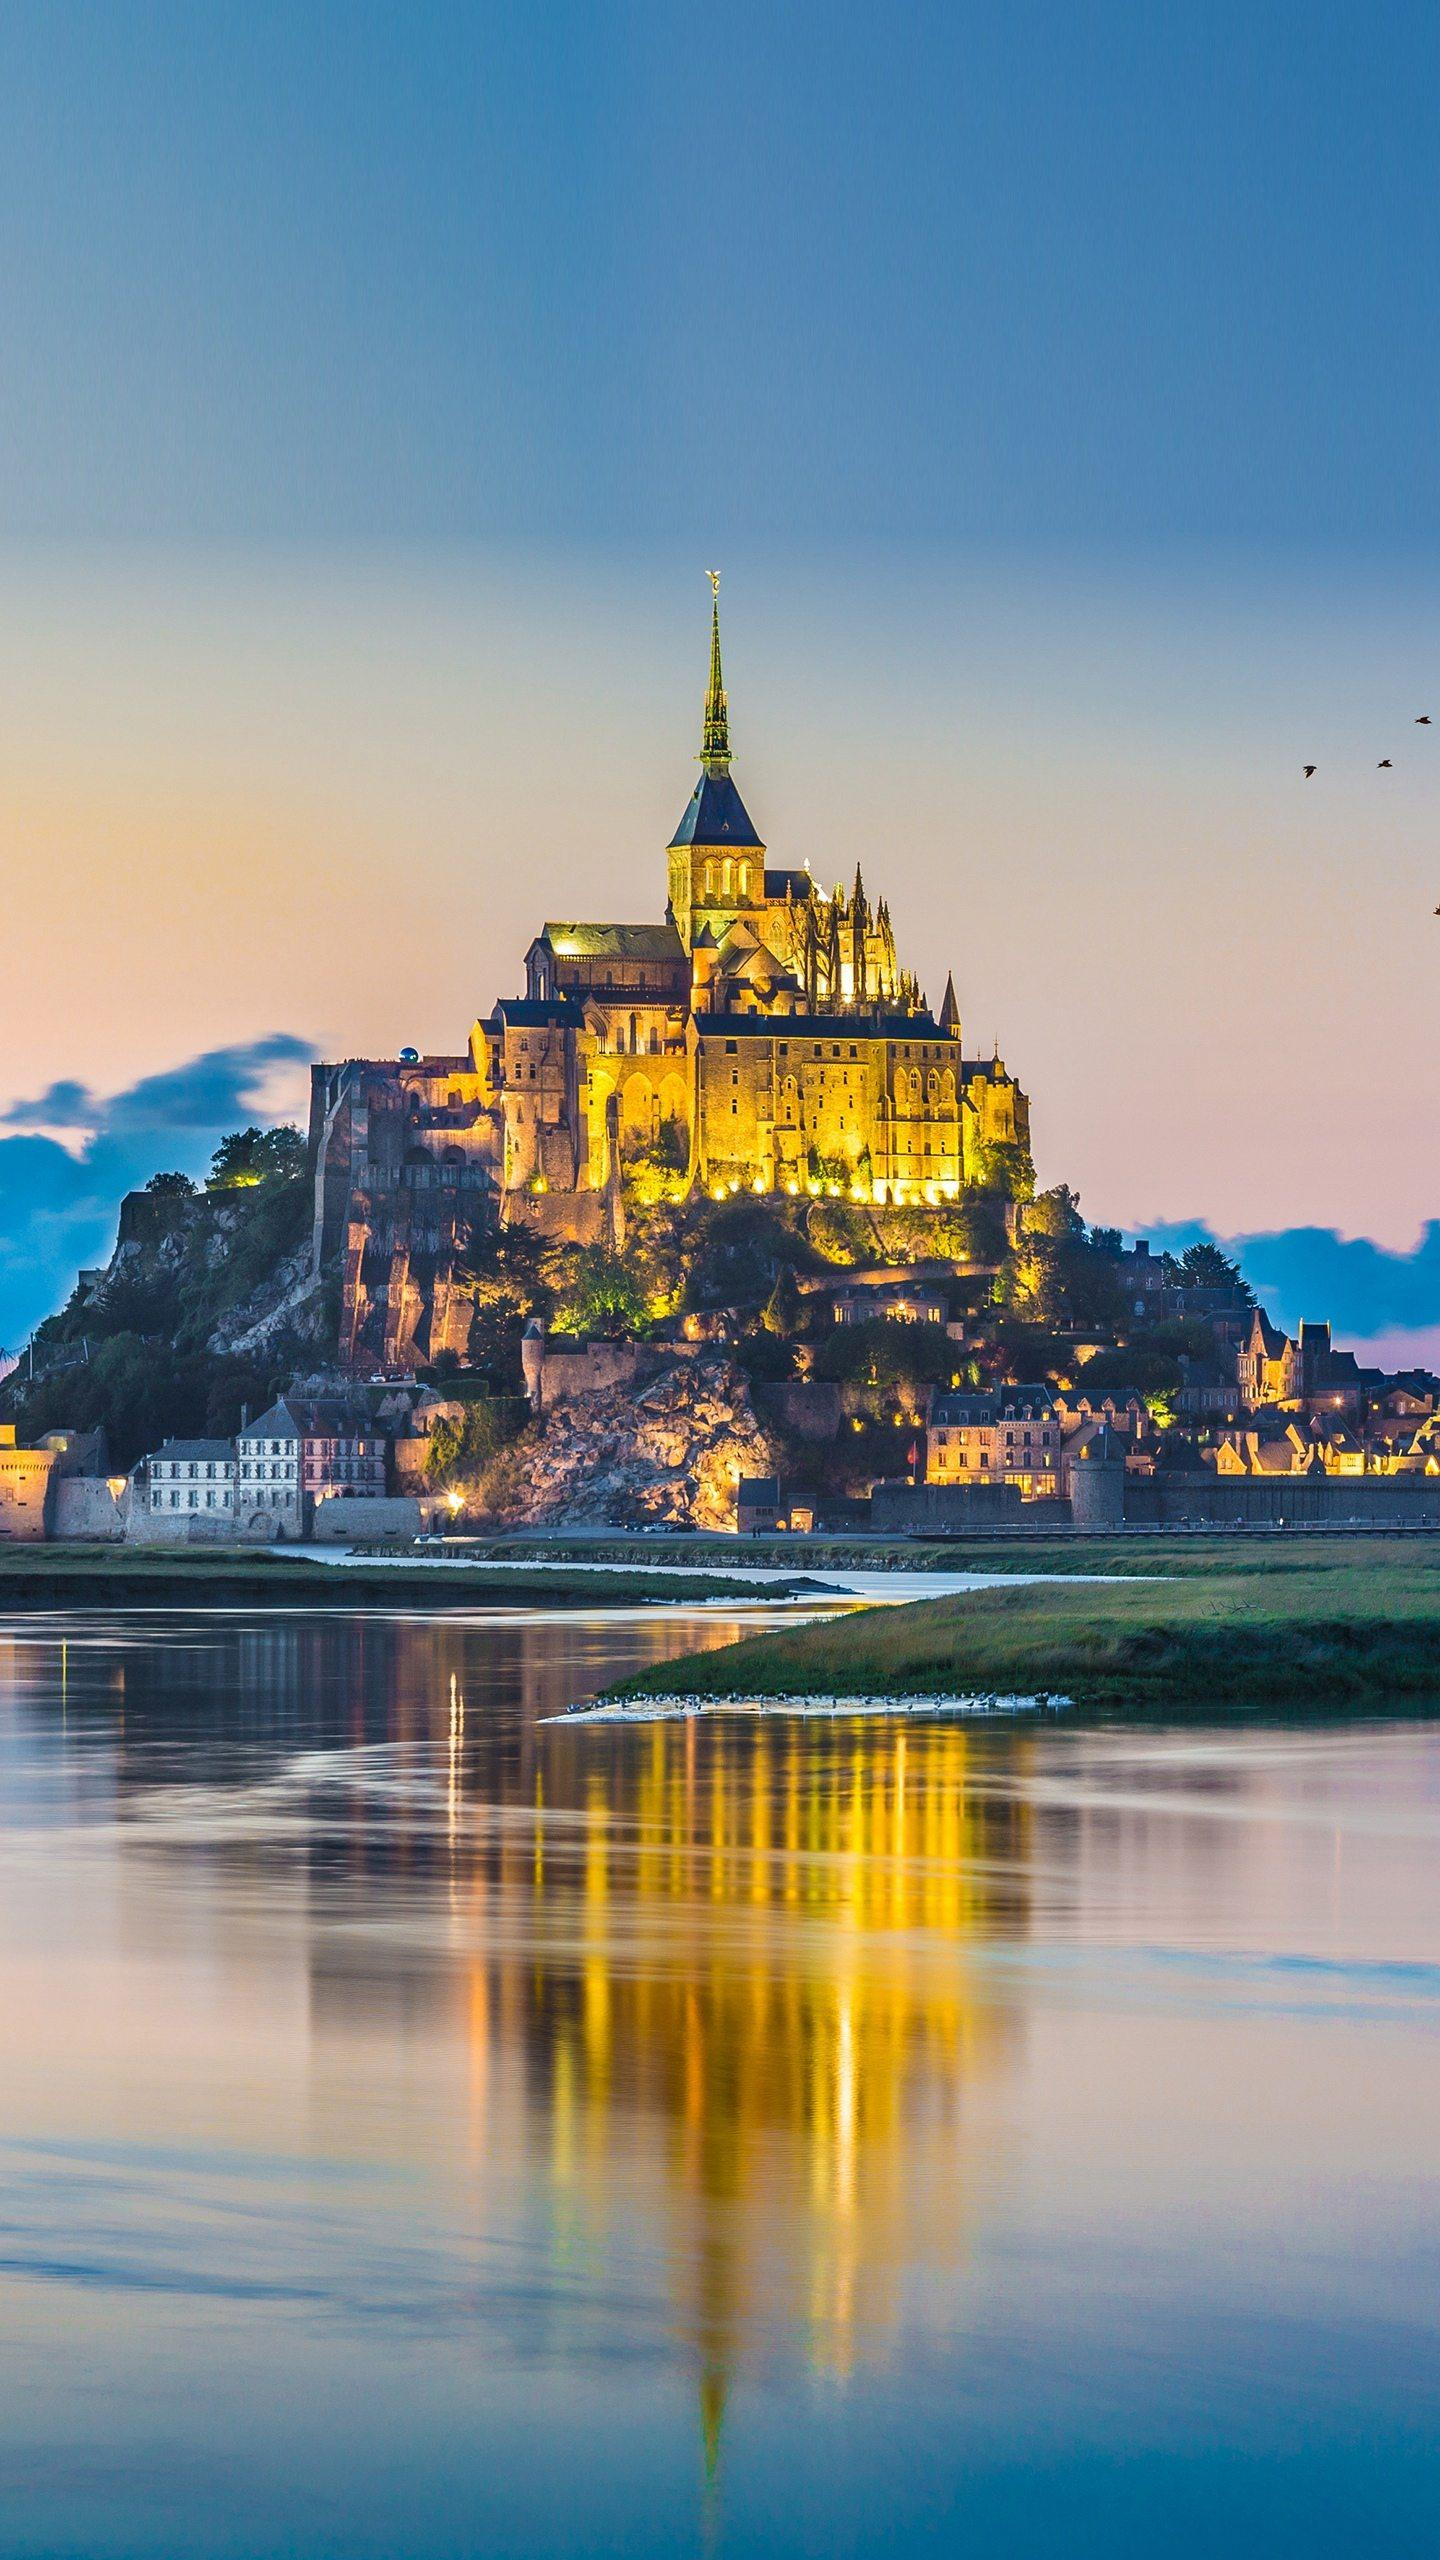 Le Mont Saint Michele Castle. Le Mont Saint Michele Castle, one of the most famous Catholic holy places in Europe, has a beautiful and mysterious landscape.